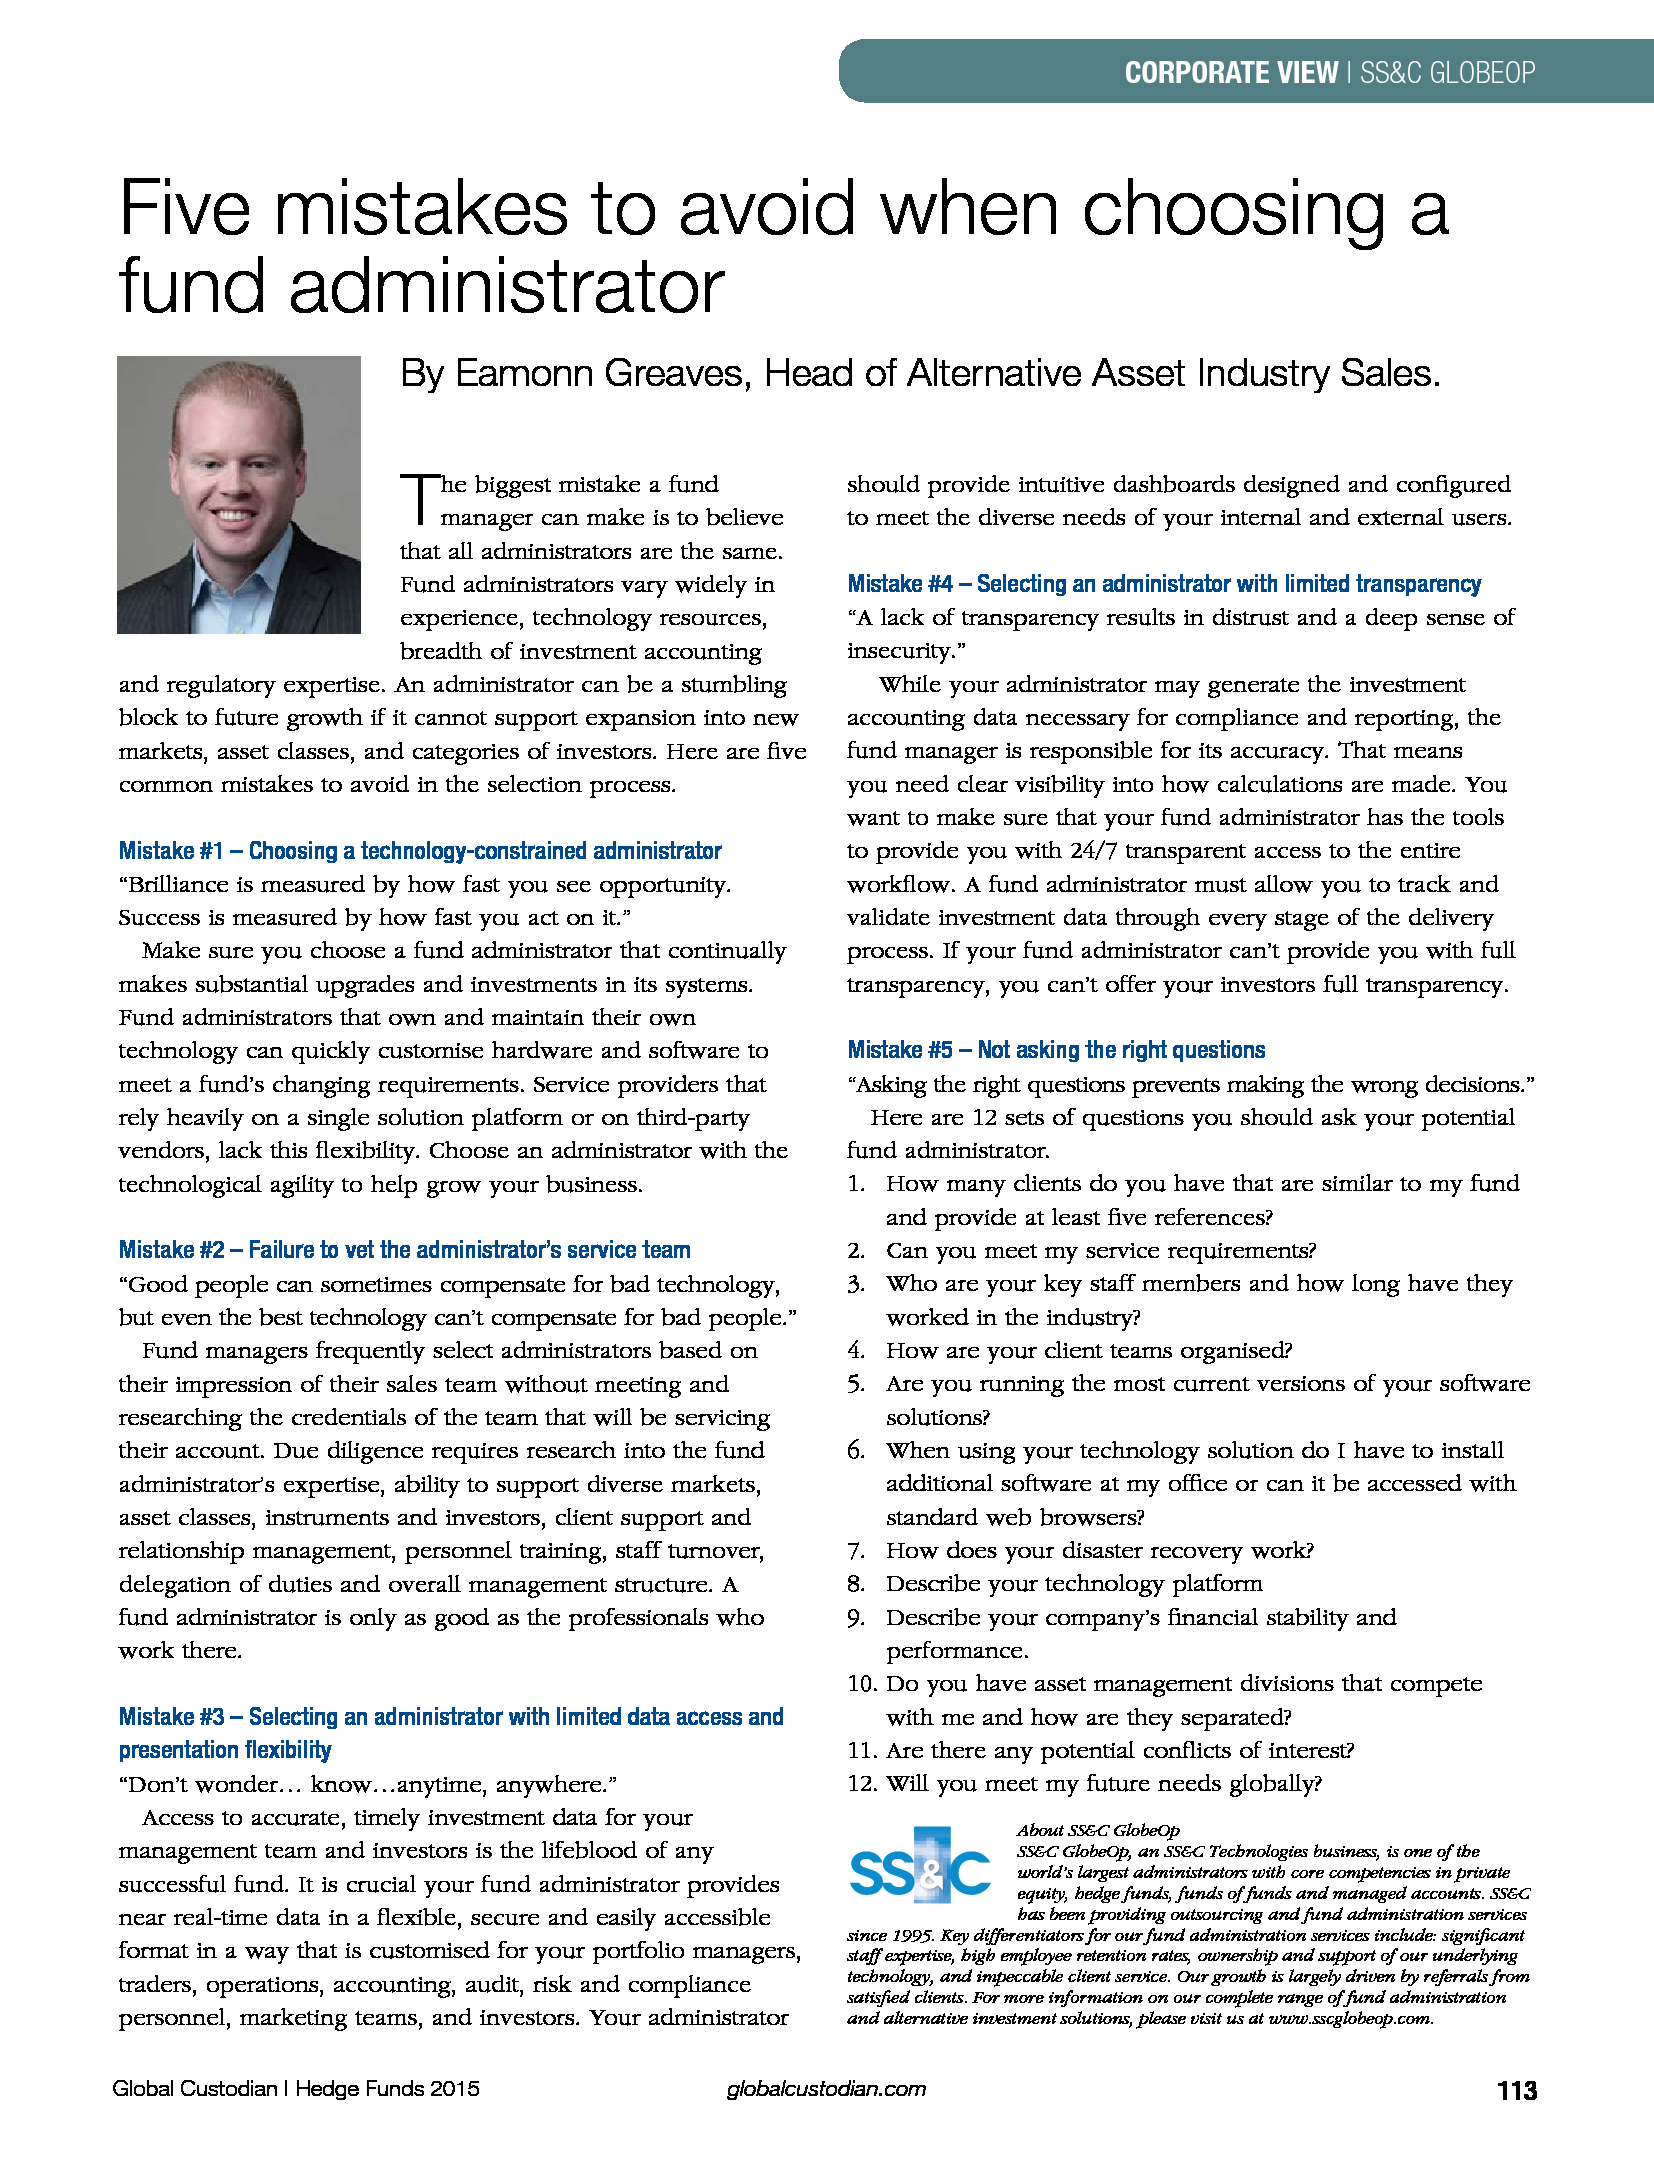 Advisorselect - The Hedge Fund Issue - Five mistakes to